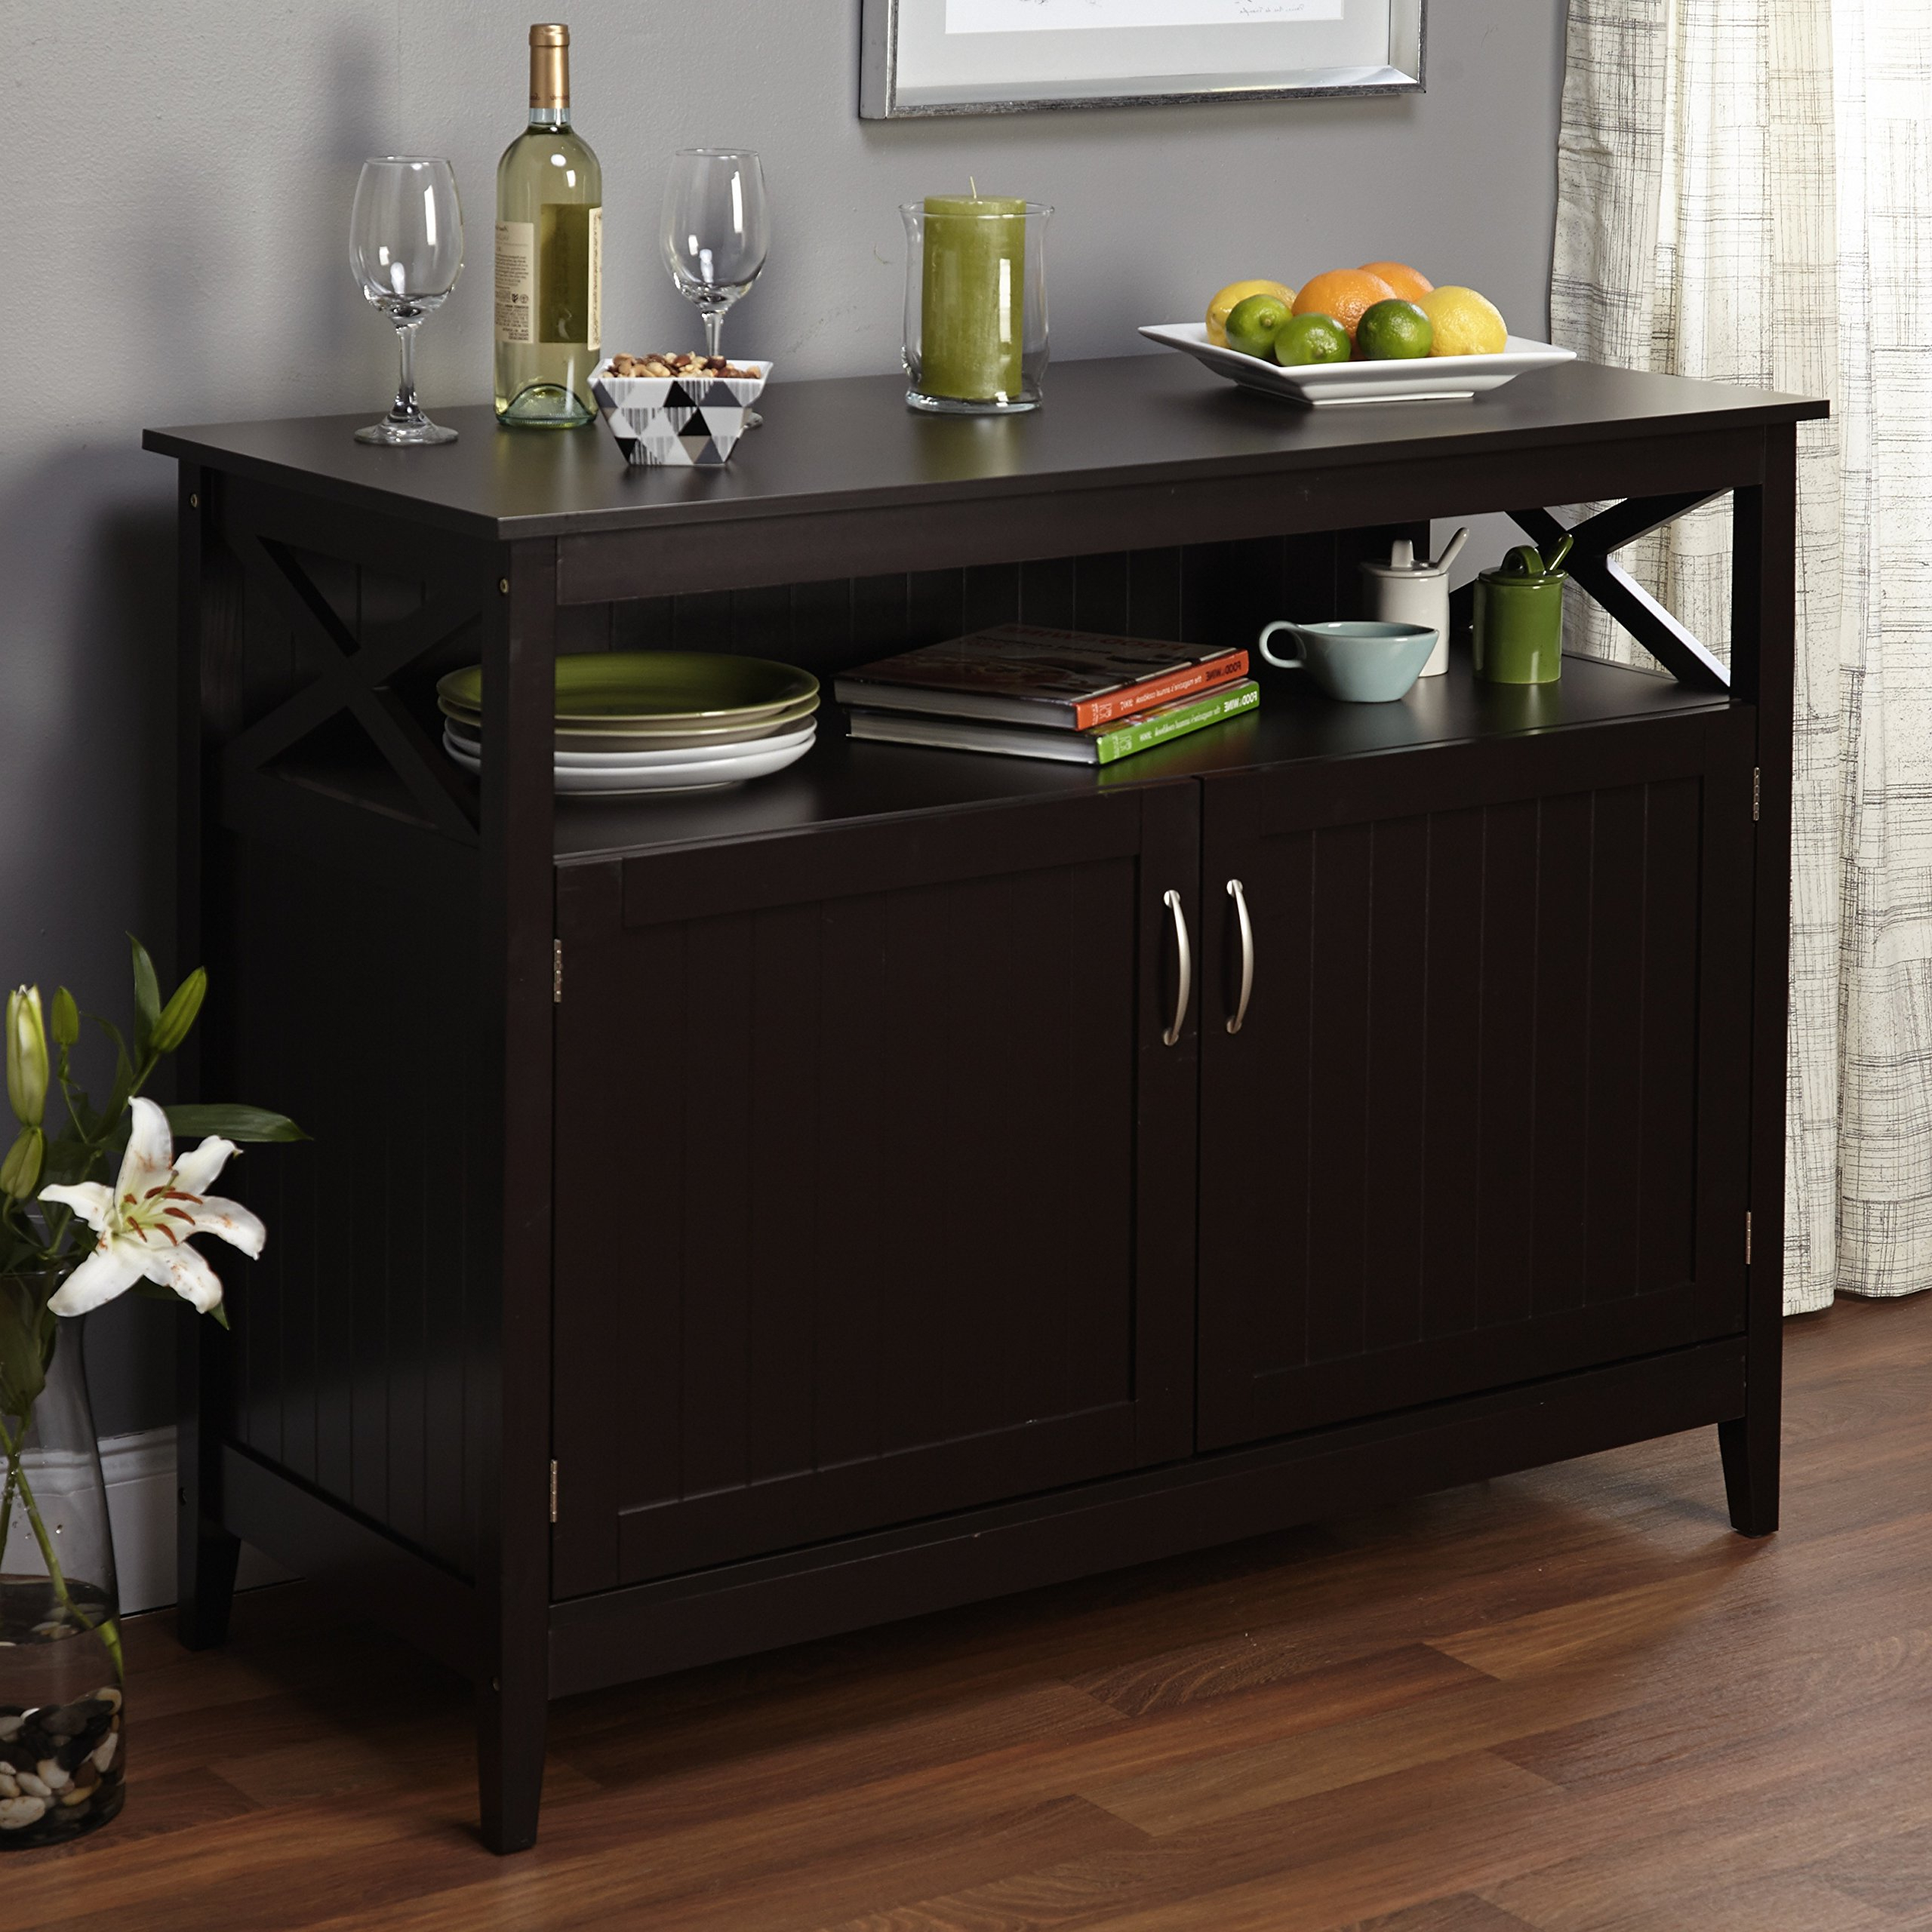 Cheap Contemporary Buffet, Find Contemporary Buffet Deals On Pertaining To Contemporary Espresso Dining Buffets (View 3 of 20)